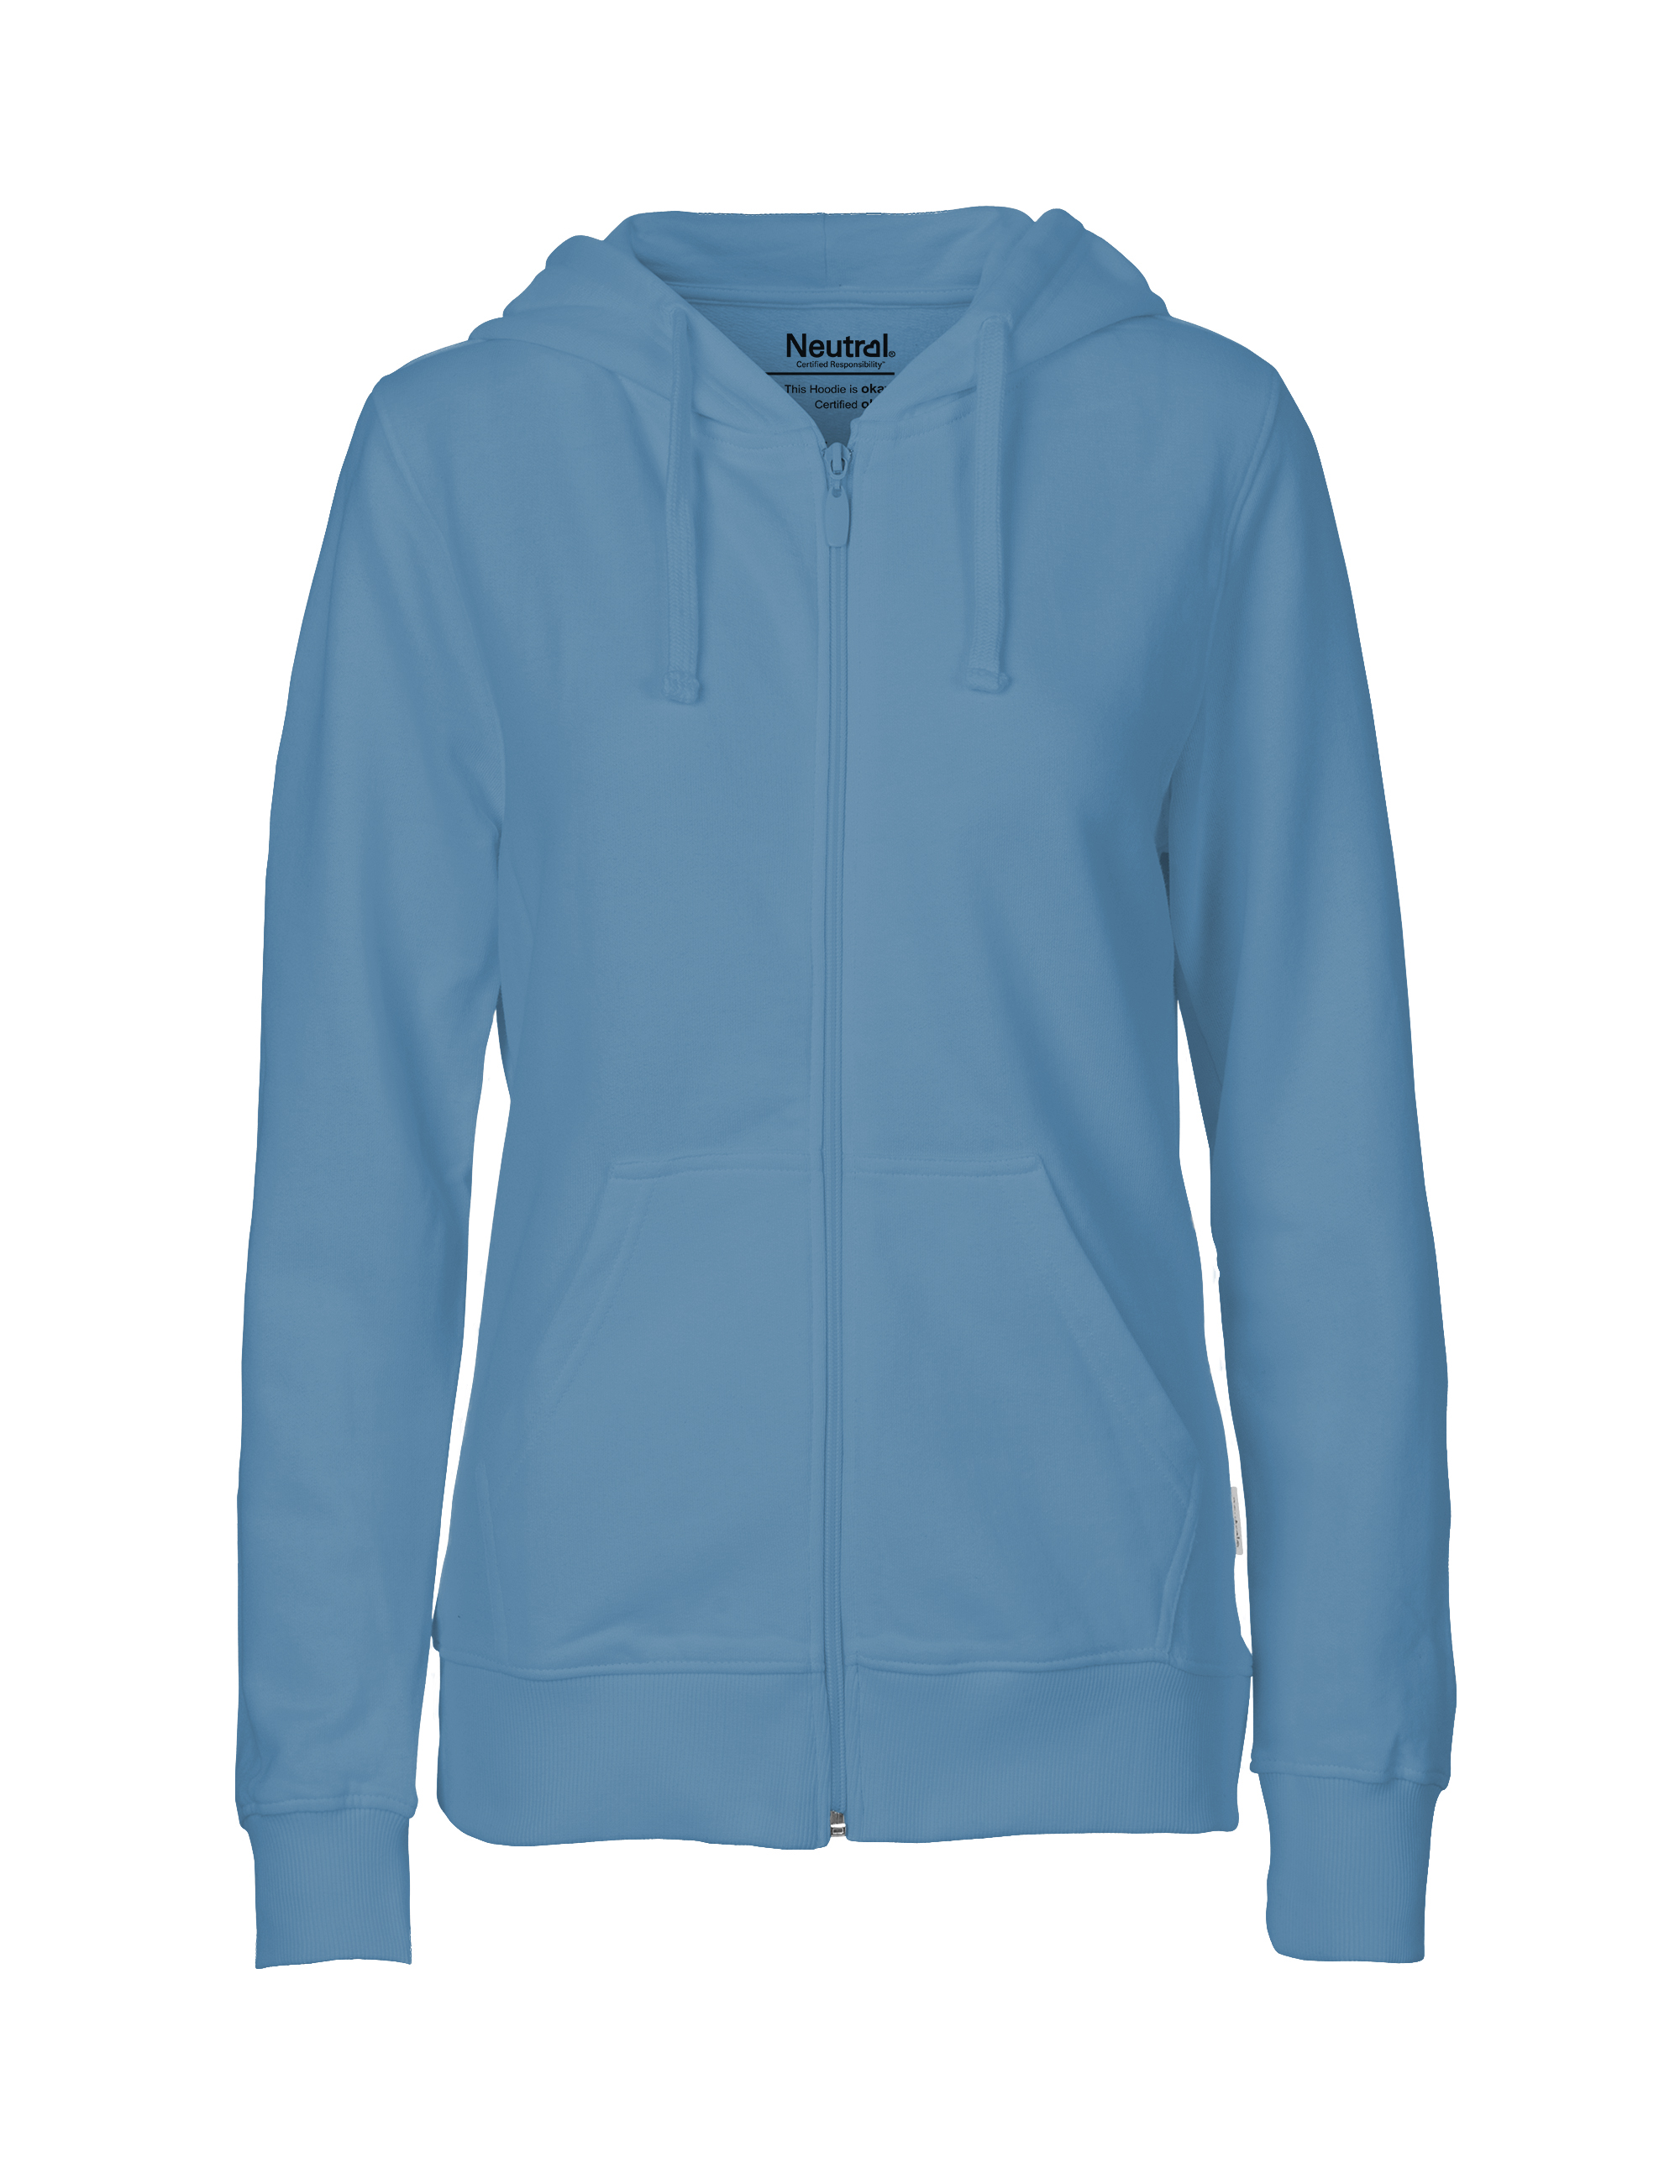 O83301 Ladies Hoodie w. Zip i Dusty Indigo